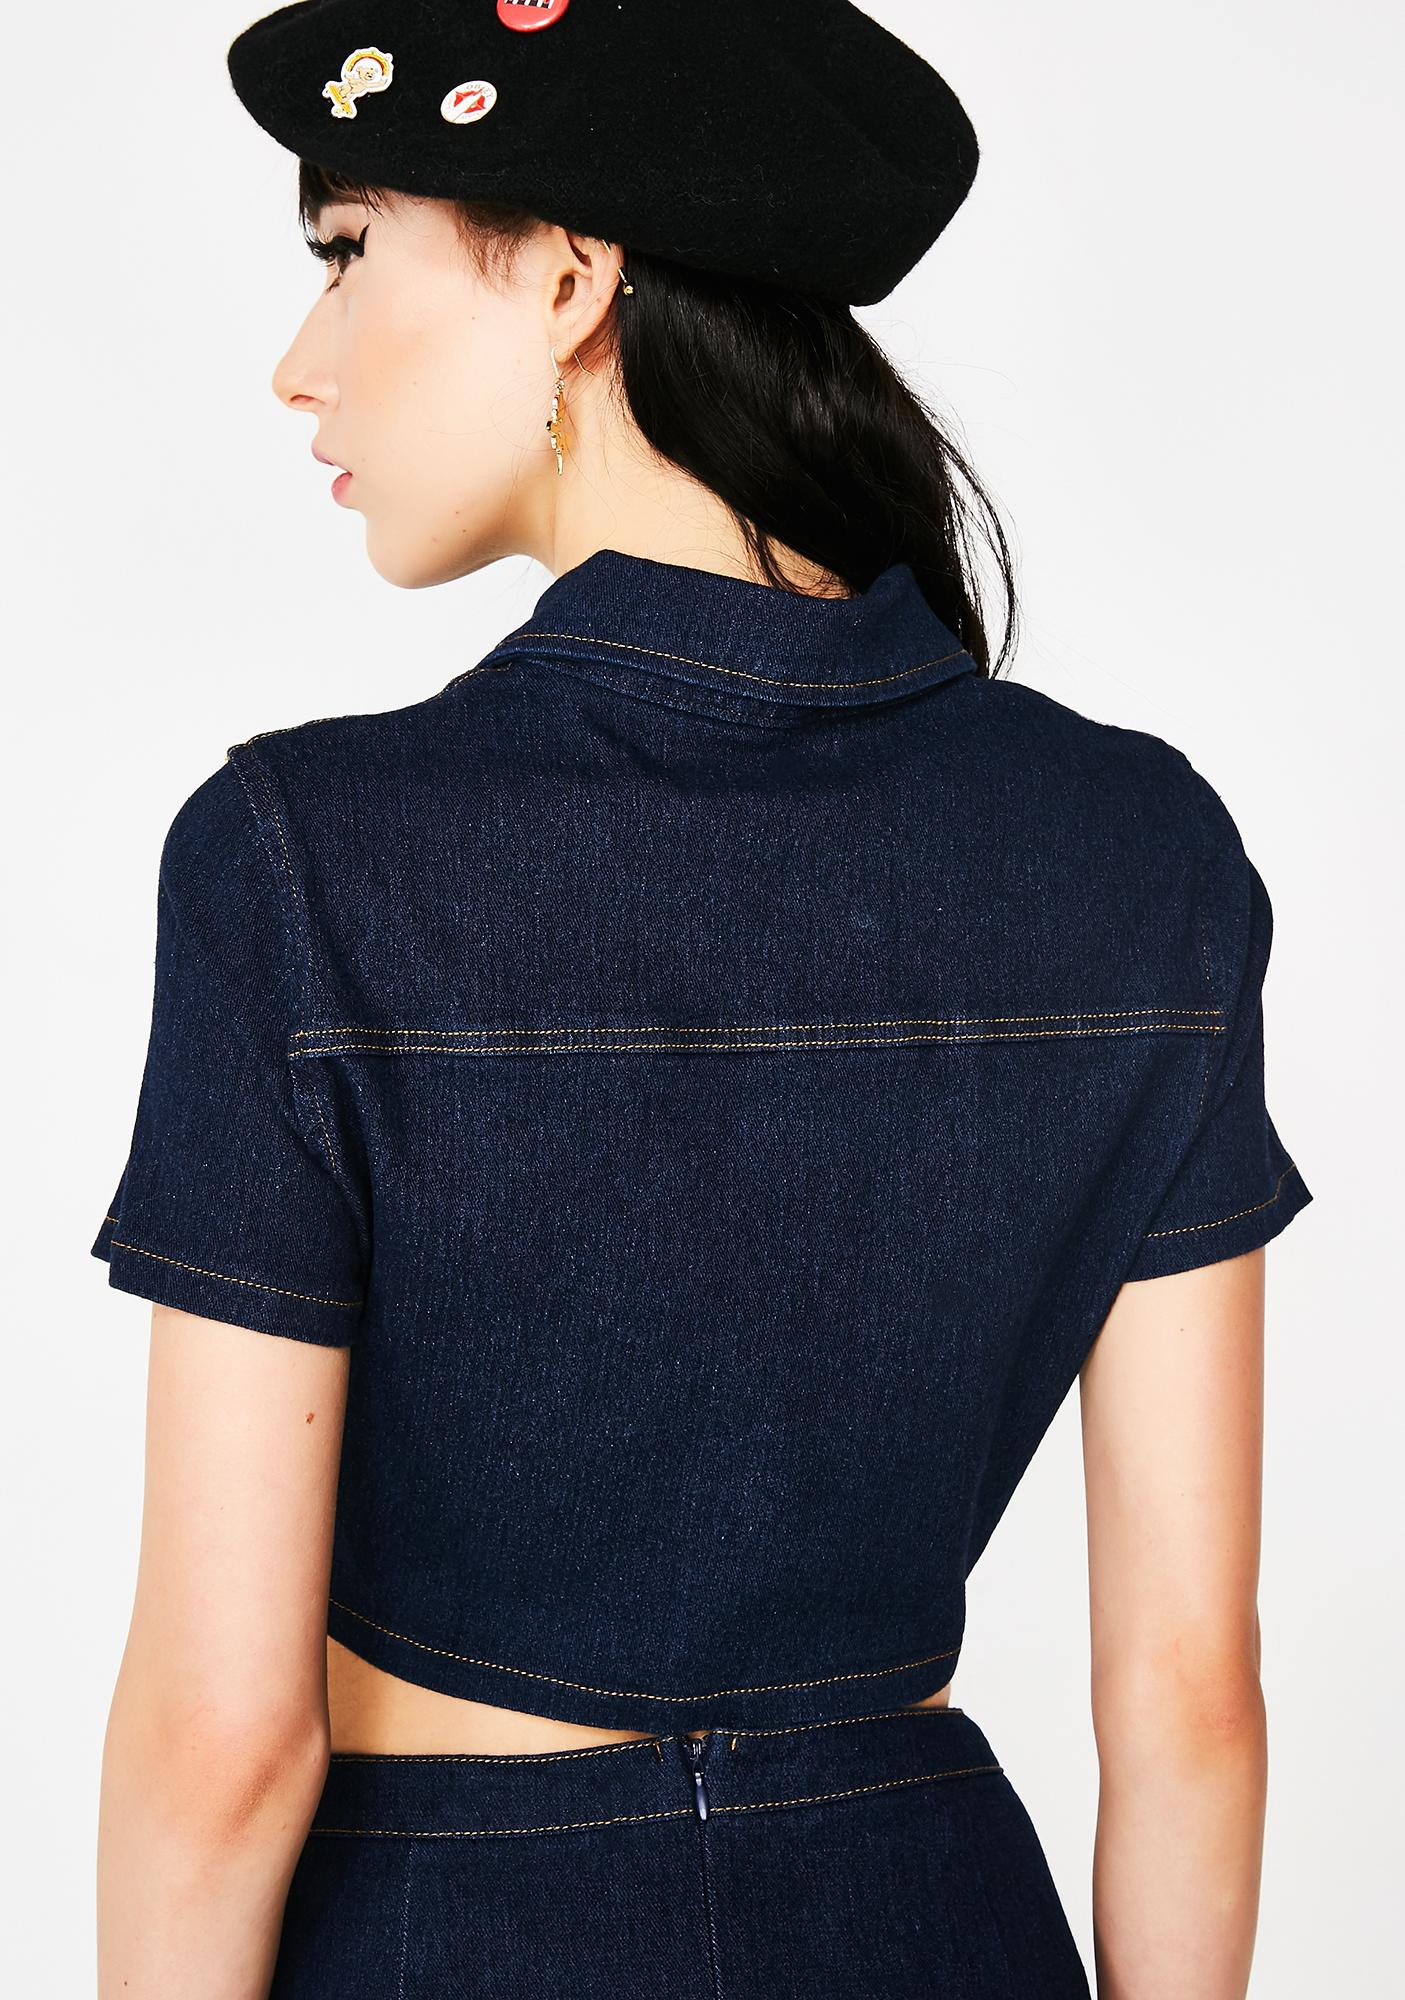 Fly Chick Denim Top